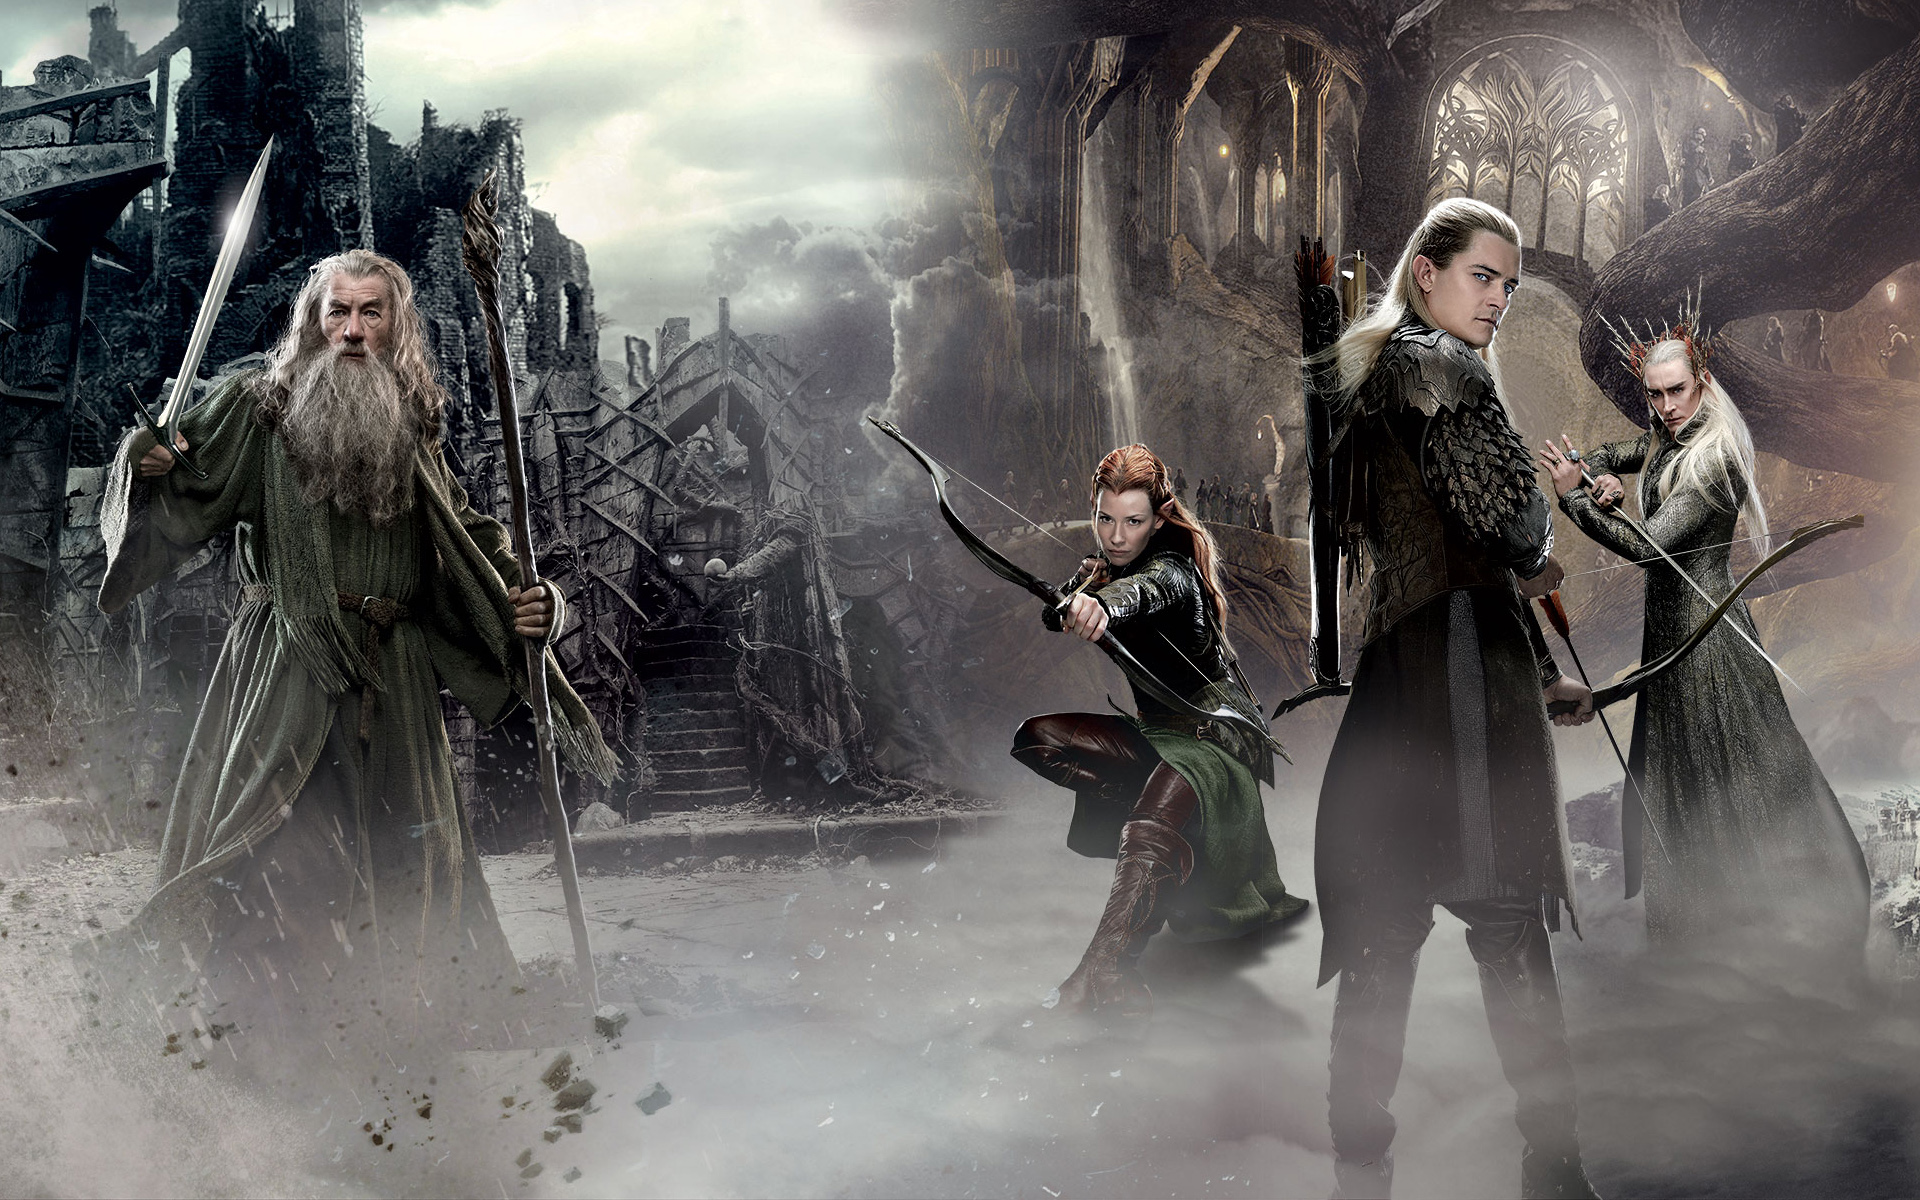 The Hobbit An Unexpected Journey 2 Movie Wallpapers HD Wallpapers 1920x1200